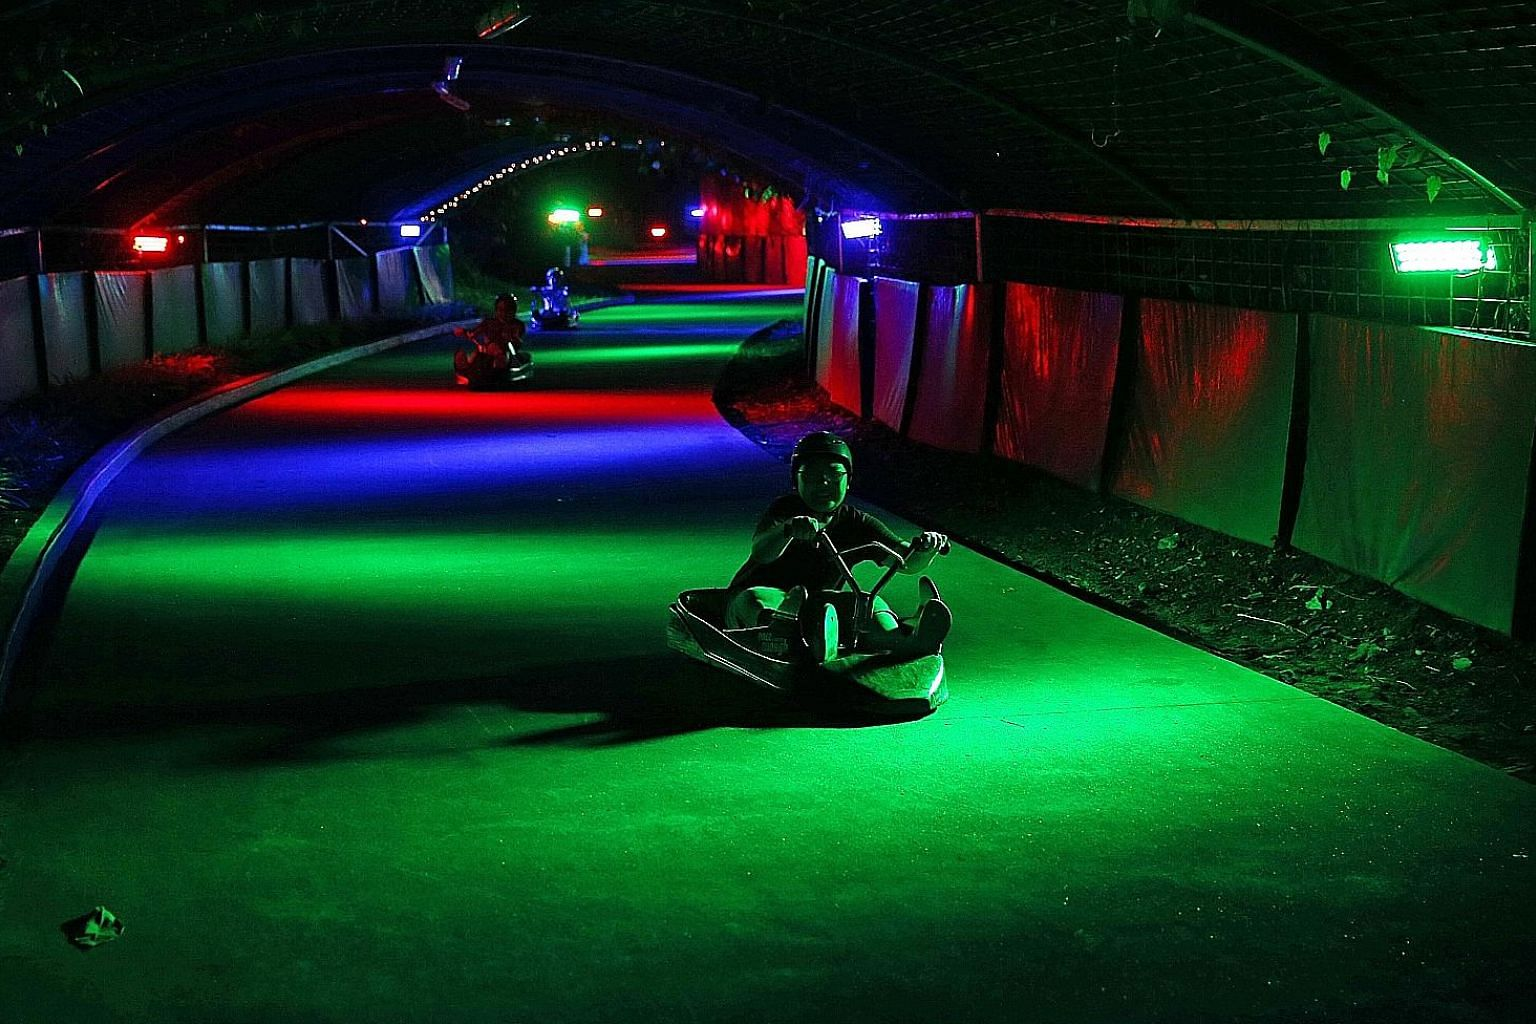 Skyline Luge Sentosa stays open till 9.30pm daily and its two luge trails glow with multi-coloured lighting in the evening.